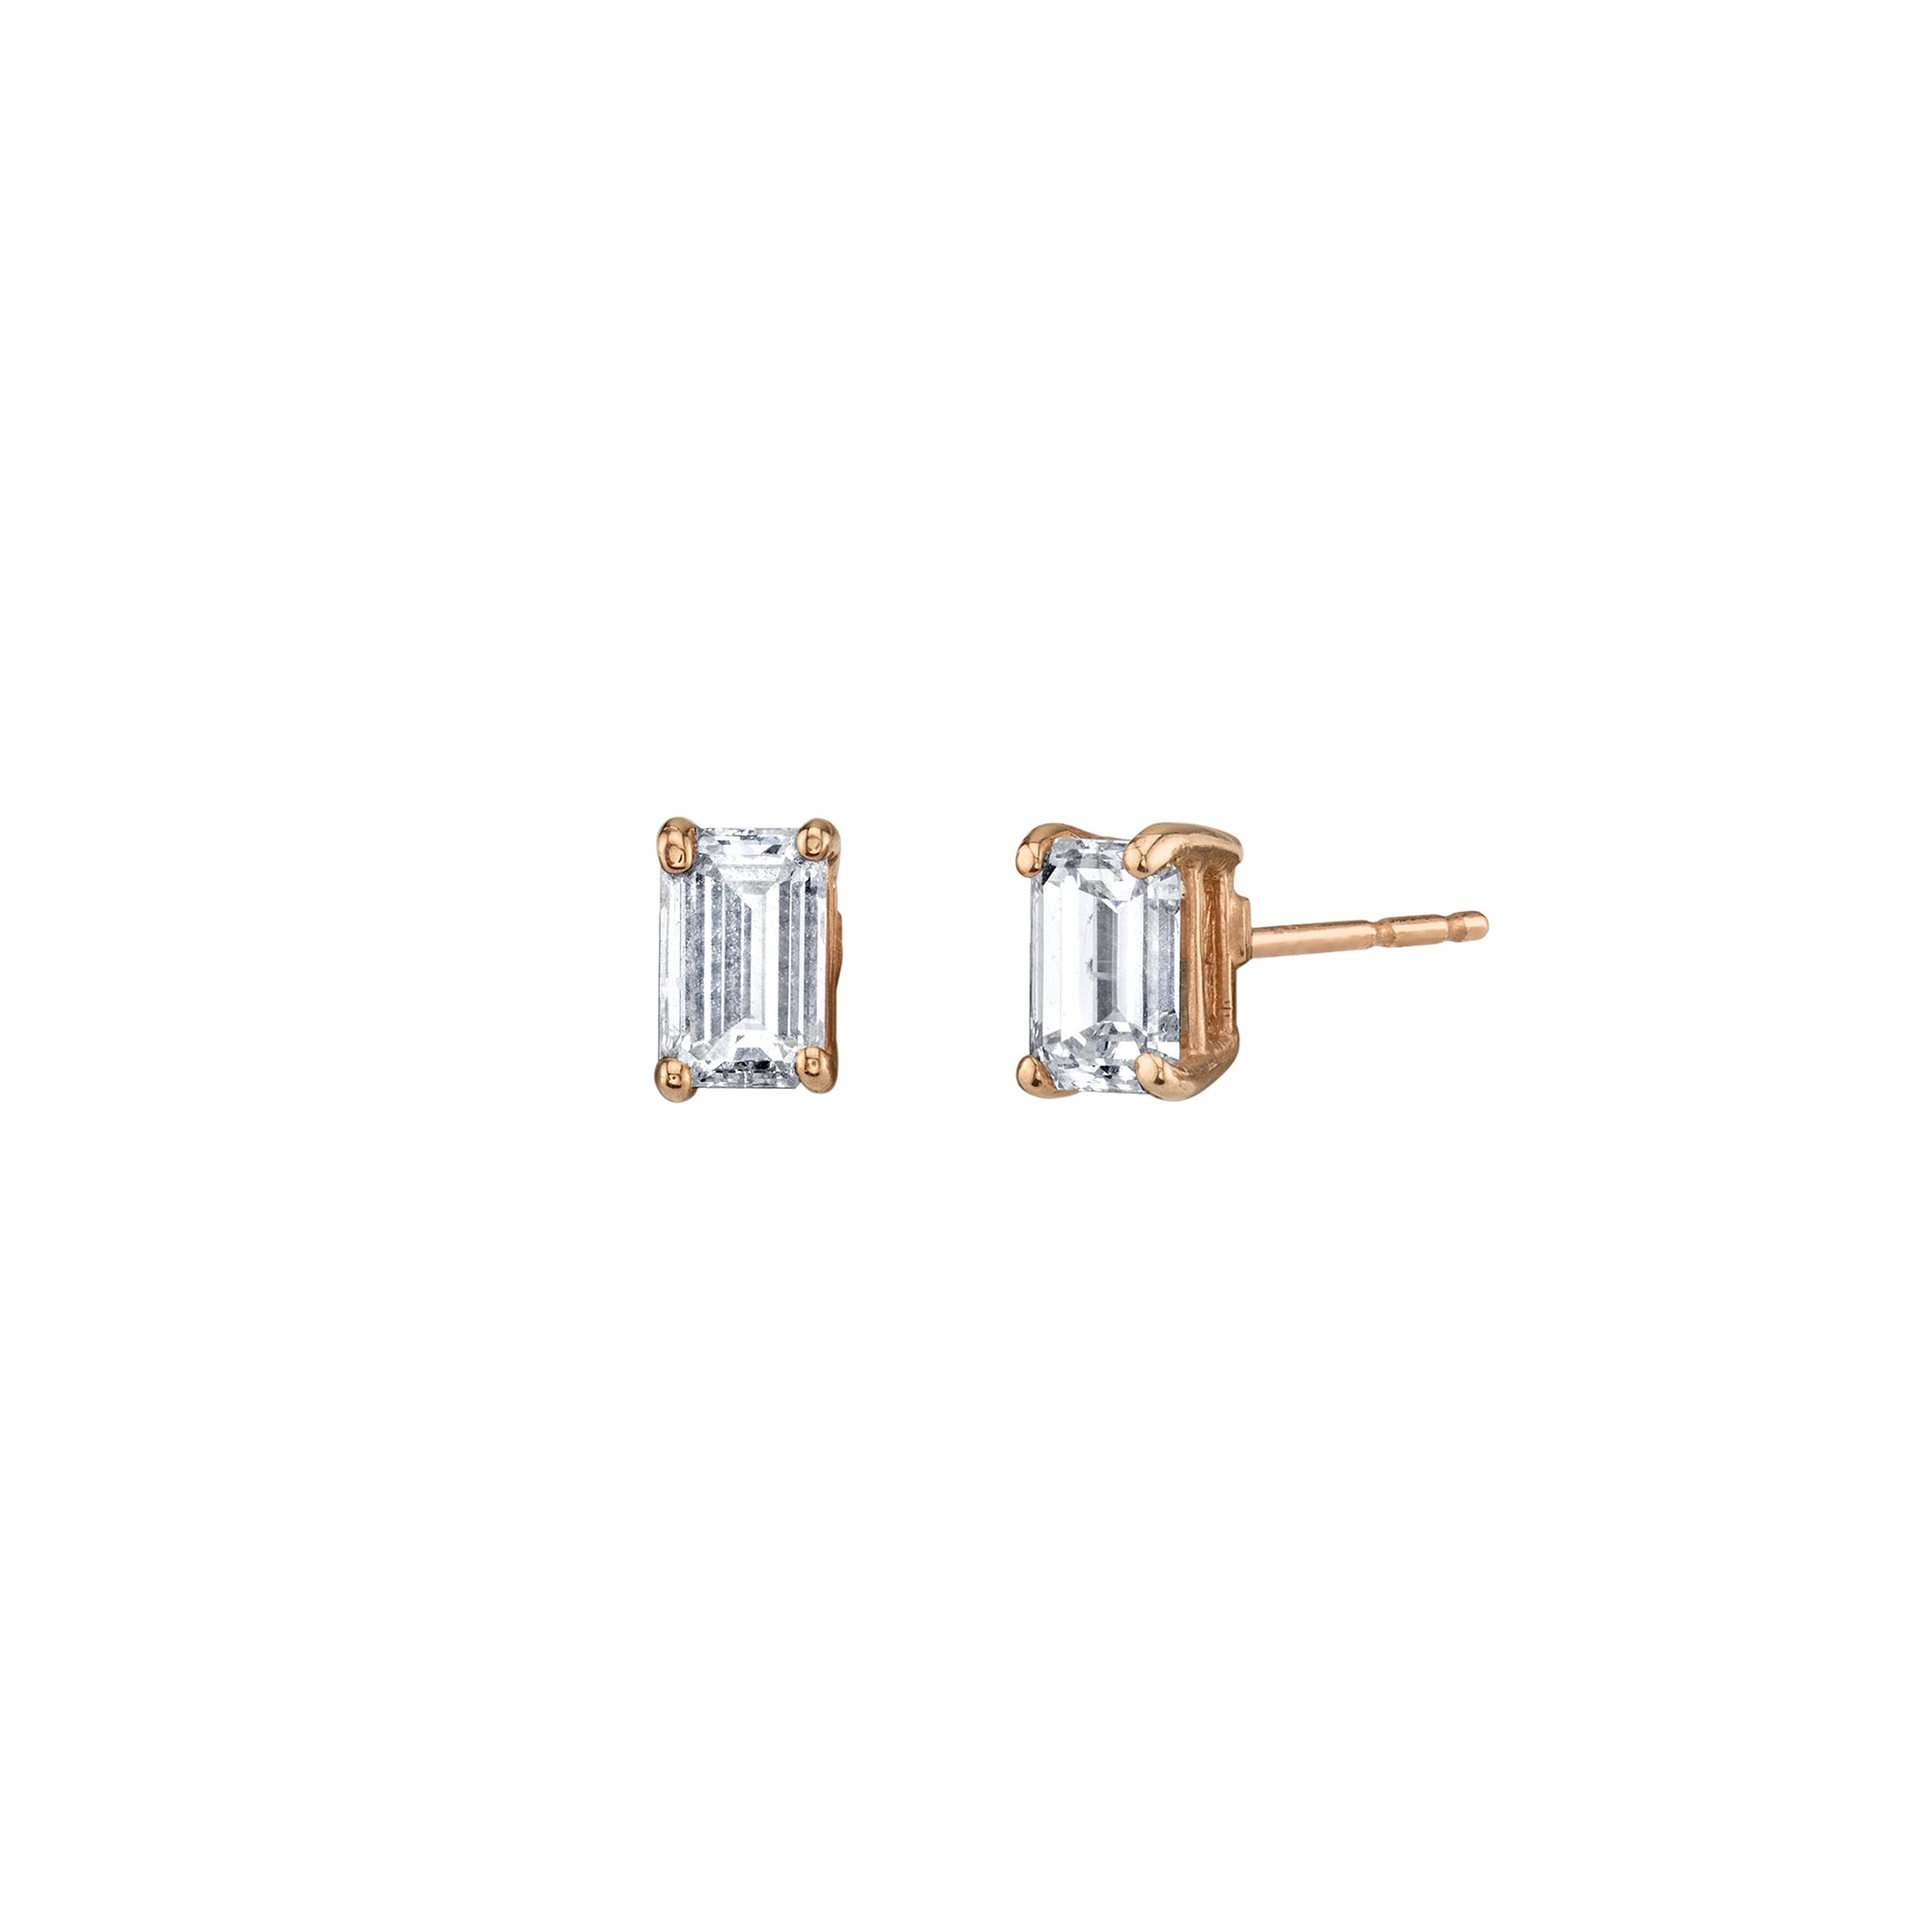 Gold White Diamond Emerald Cut Studs by Shay for Broken English Jewlery